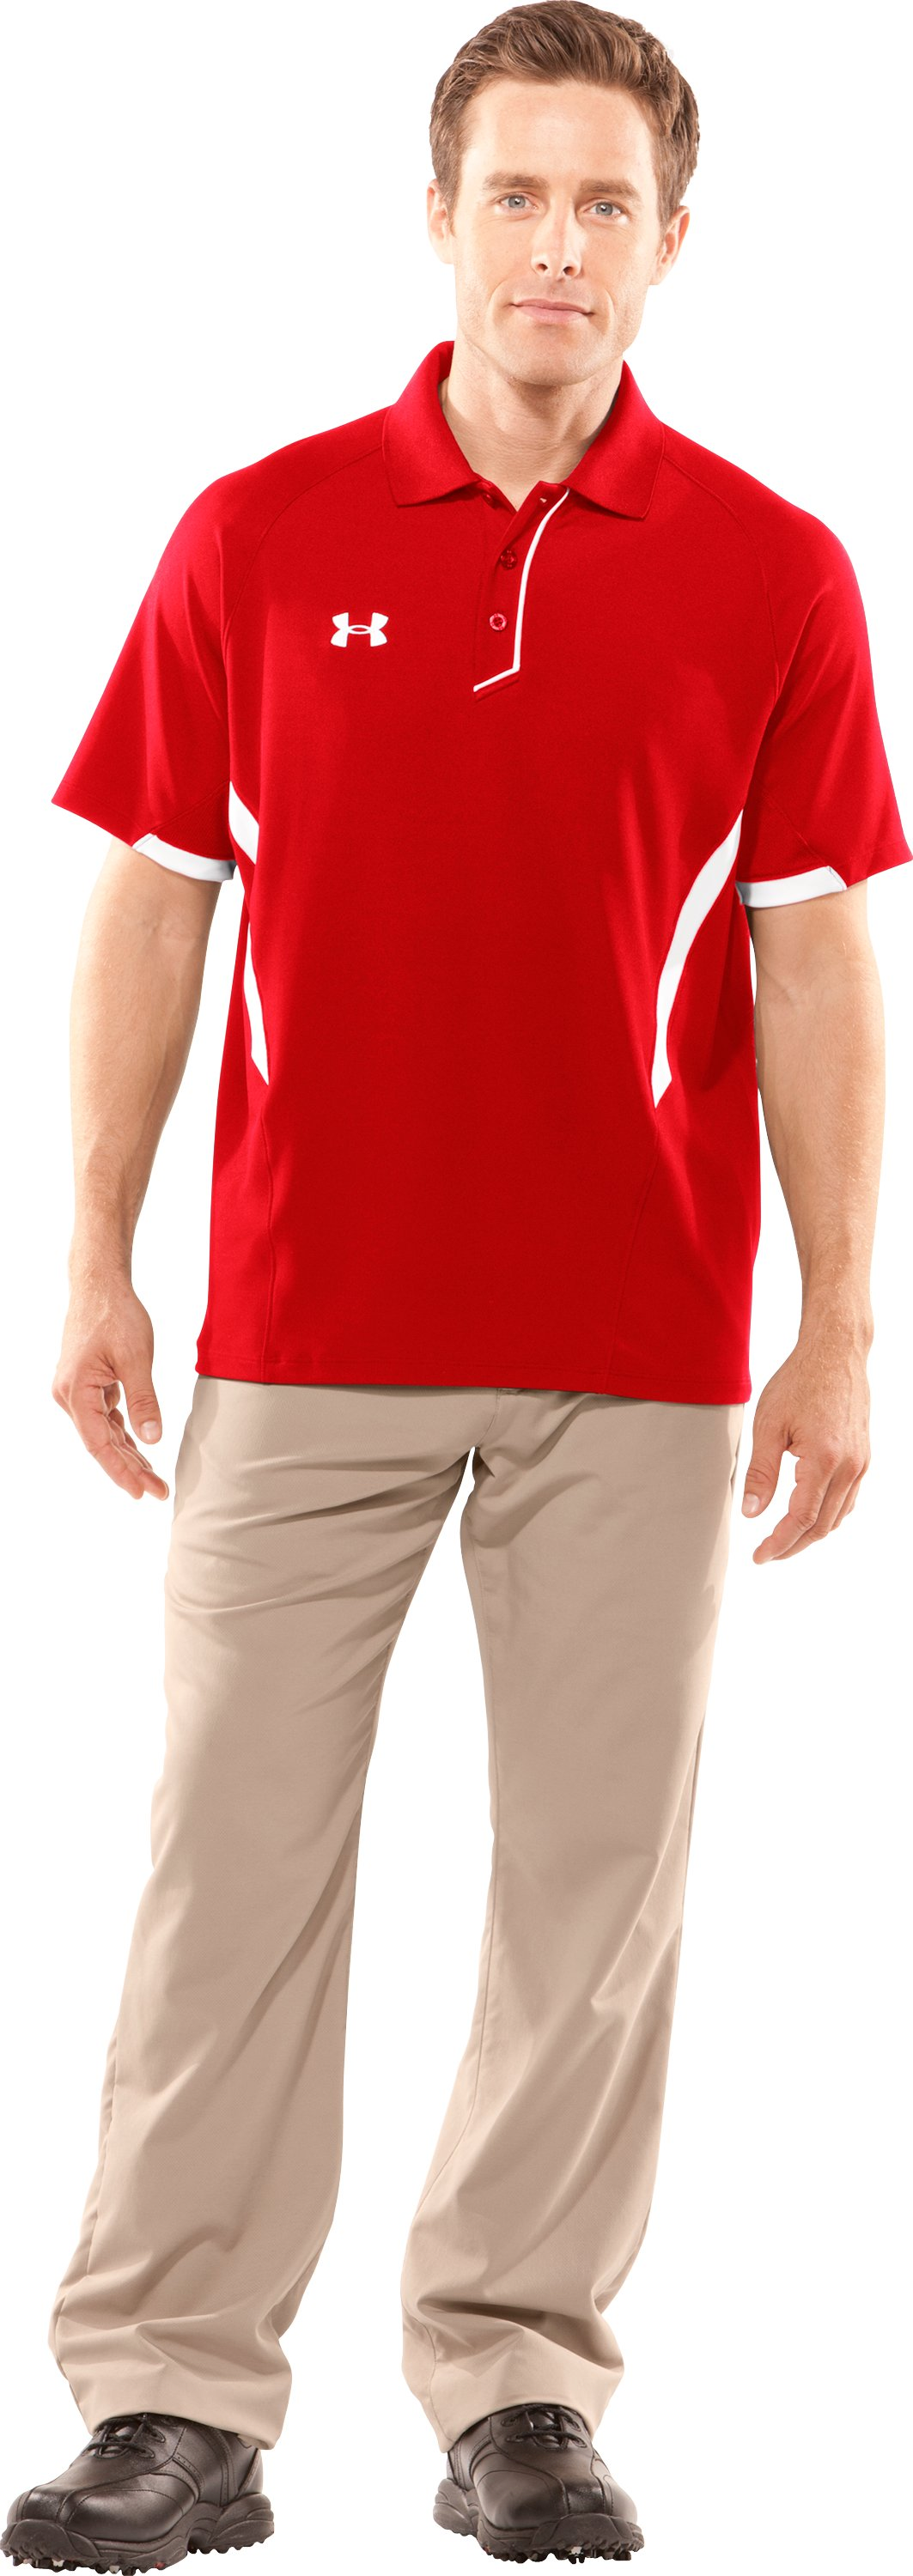 Men's Advantage Short Sleeve Golf Polo, Red, Front